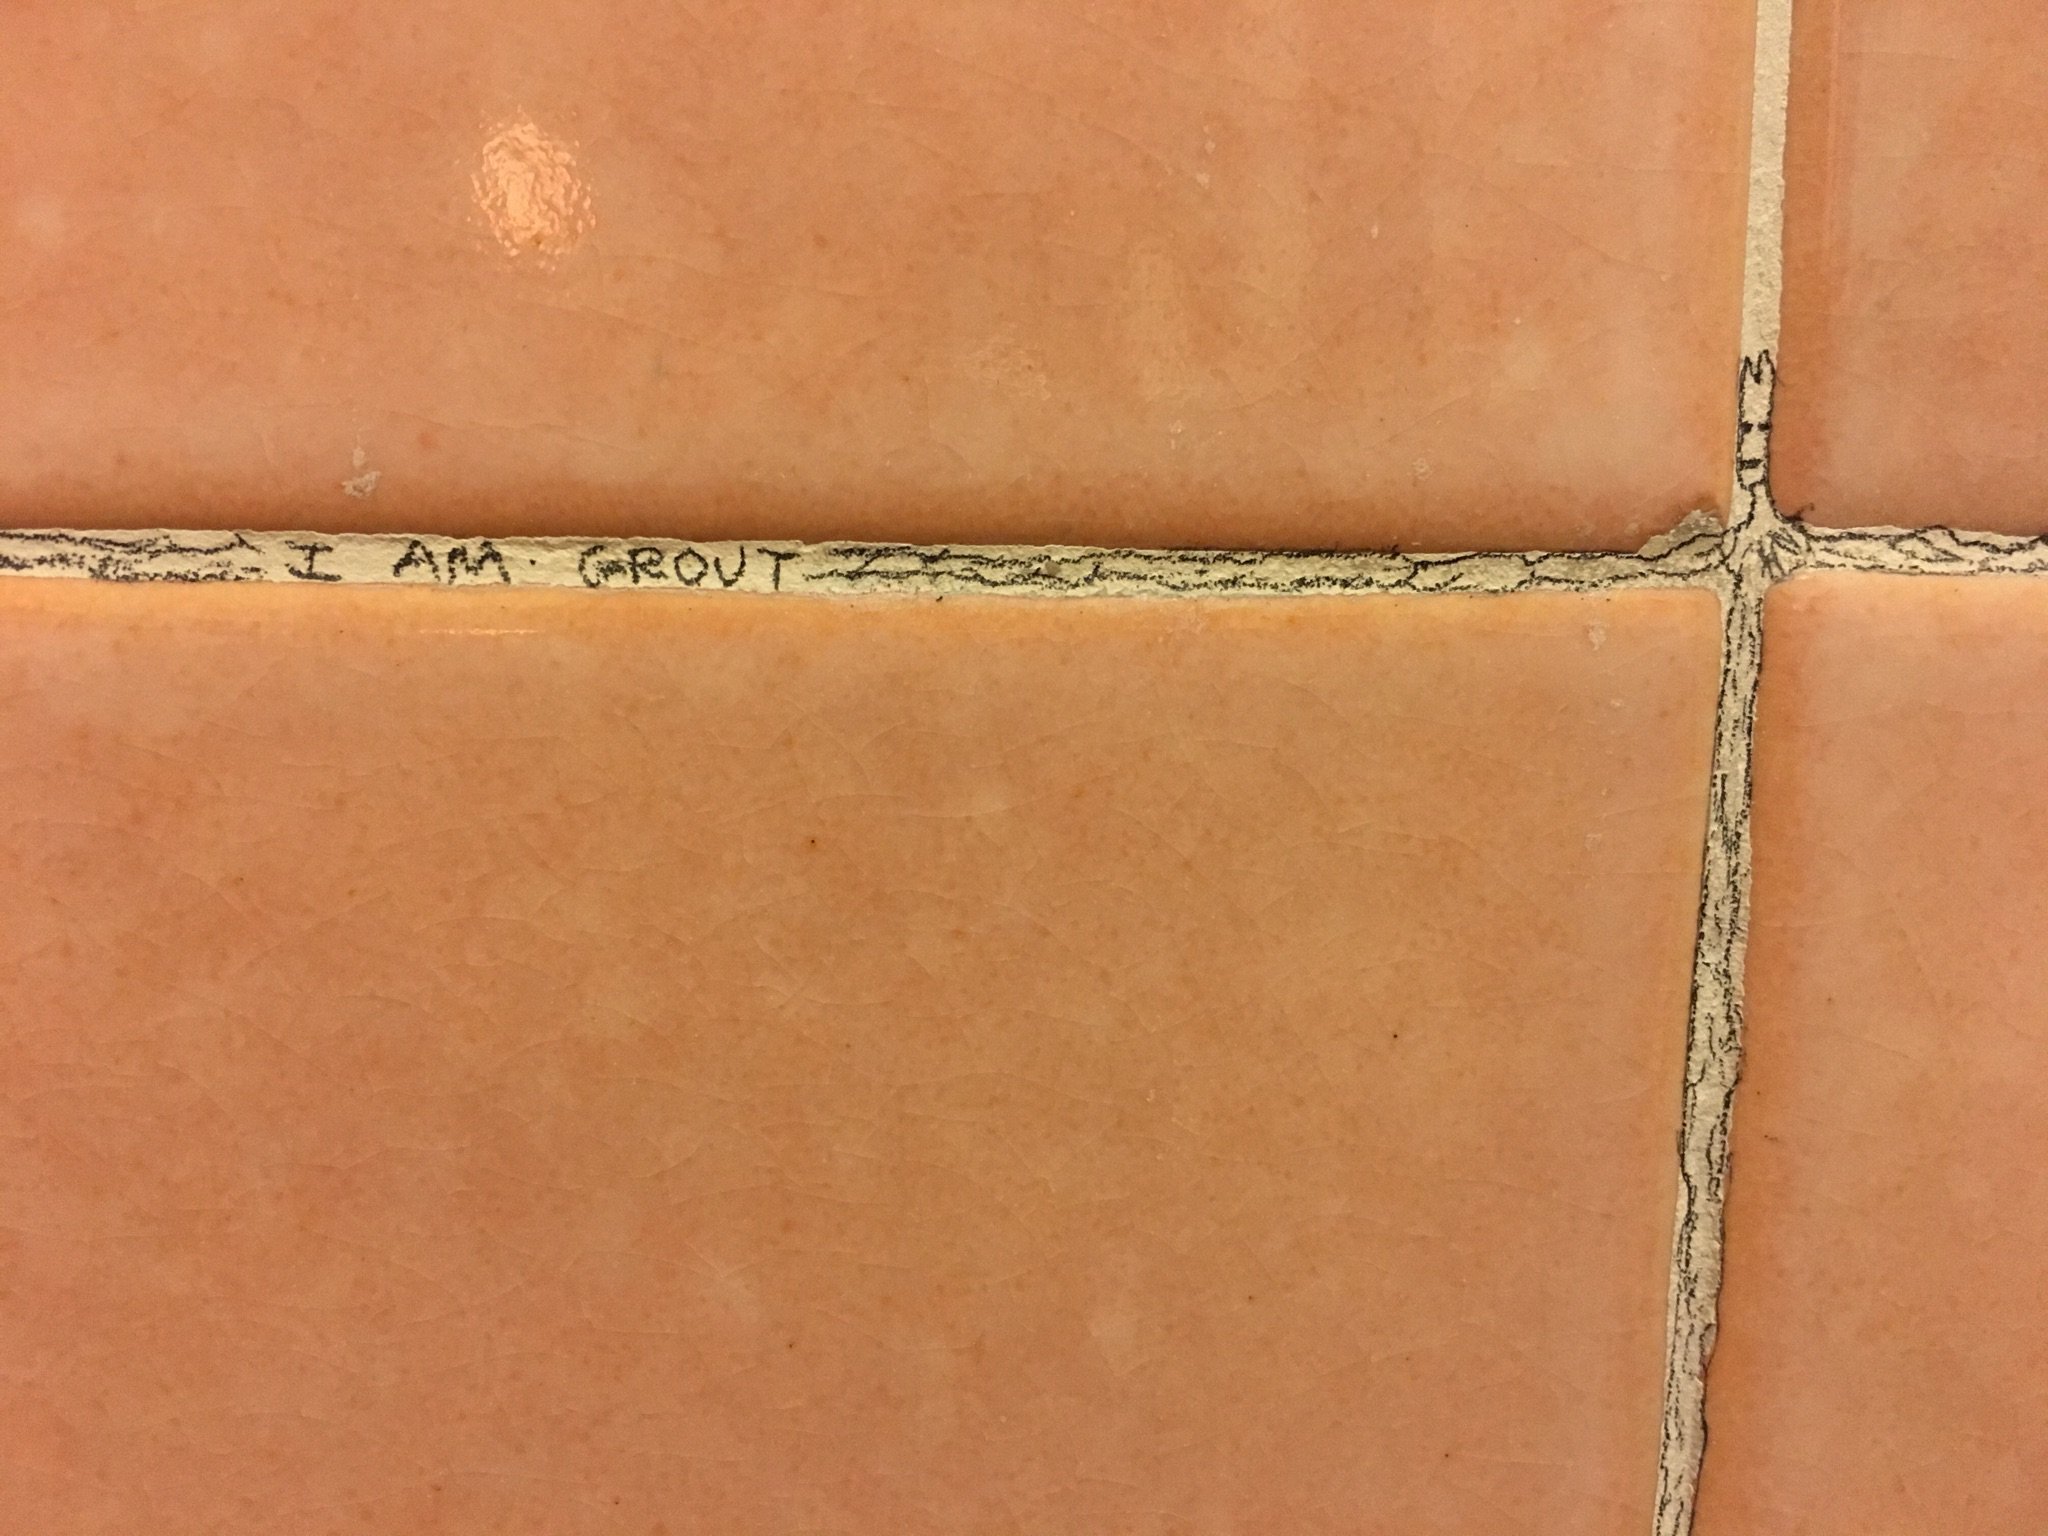 I am Grout https://t.co/qkDUf3OeZS